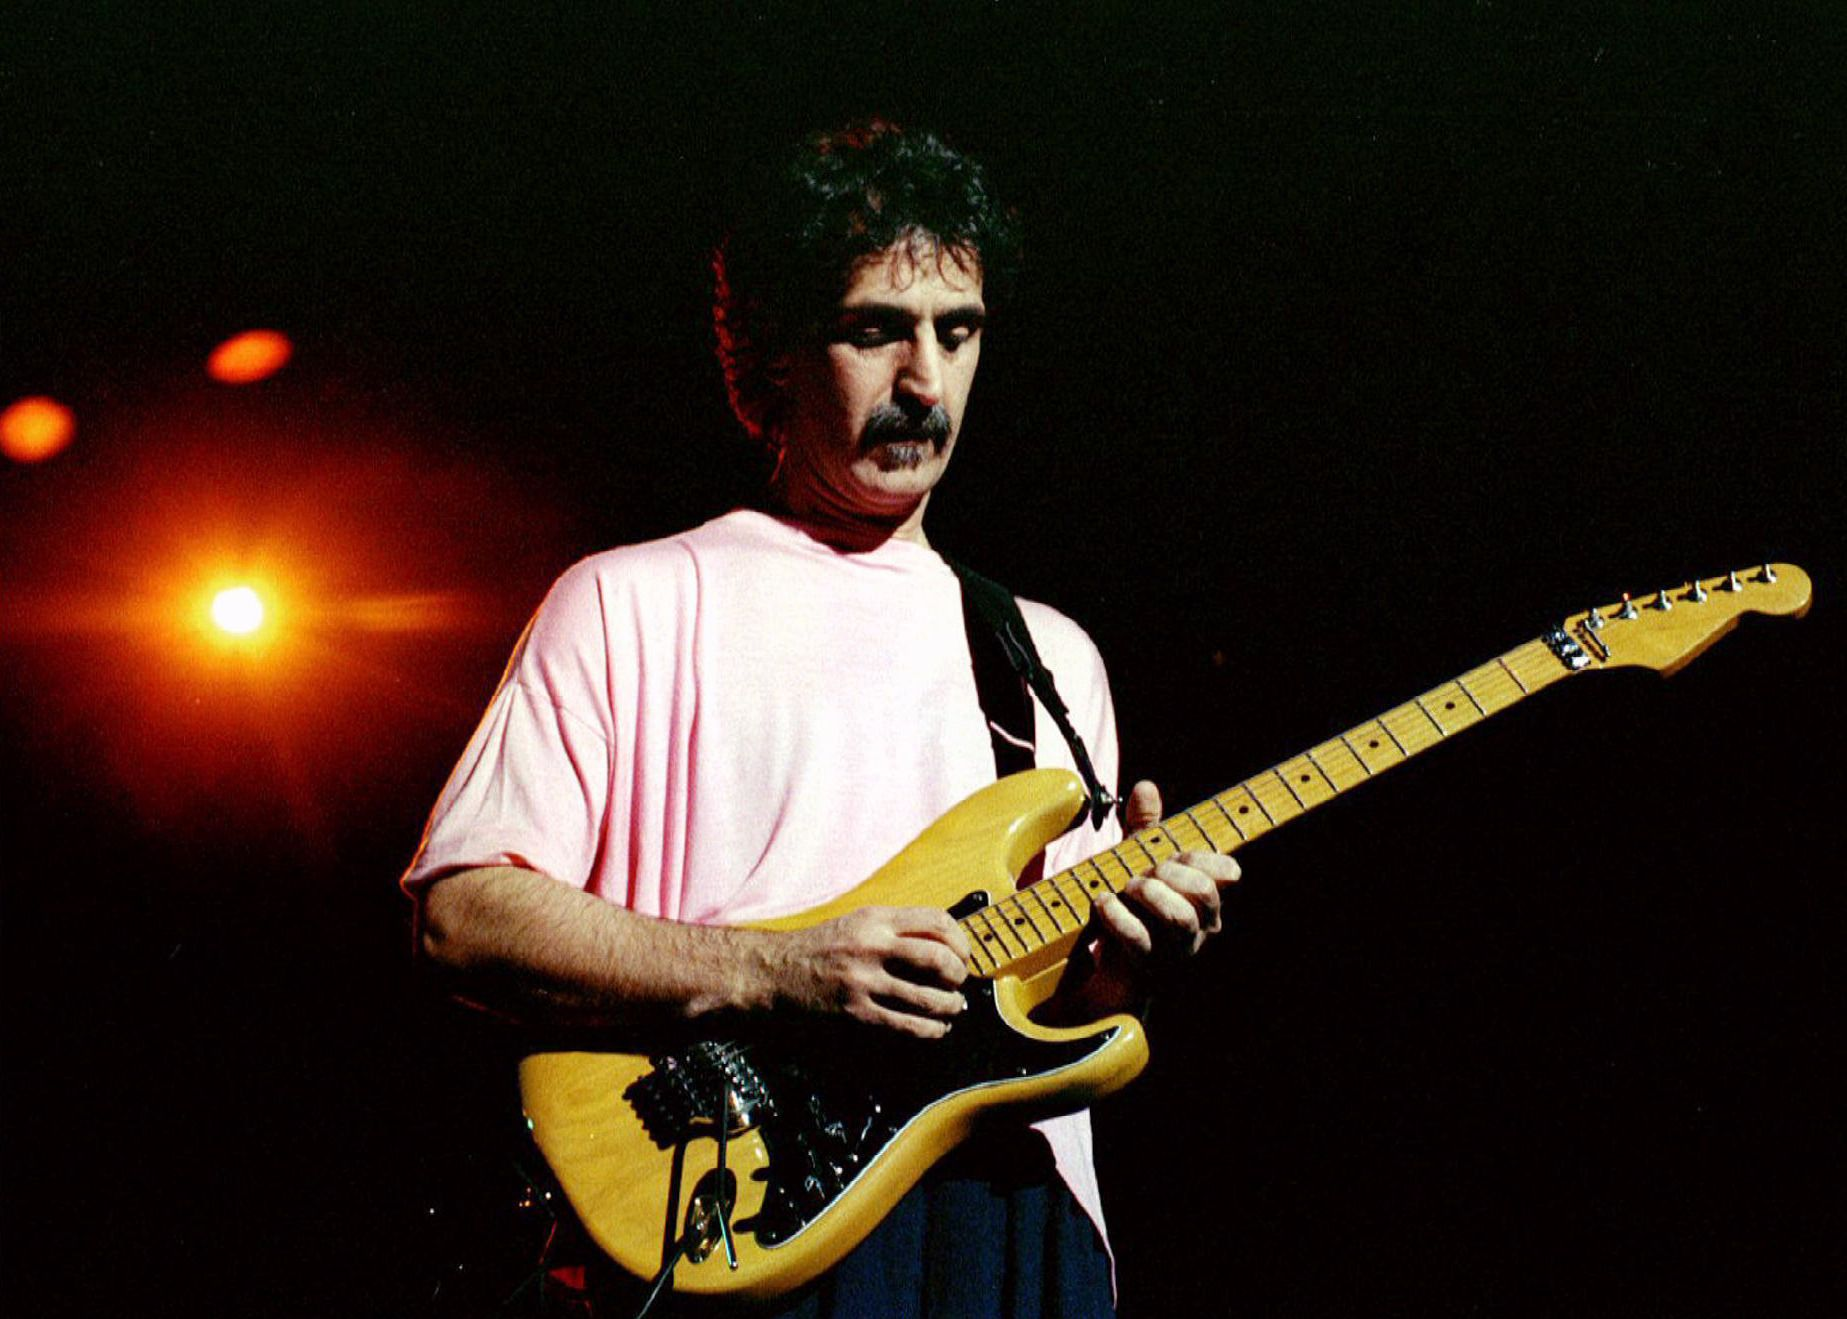 frank zappa 39 s scathing wit comes back to life in a new documentary. Black Bedroom Furniture Sets. Home Design Ideas